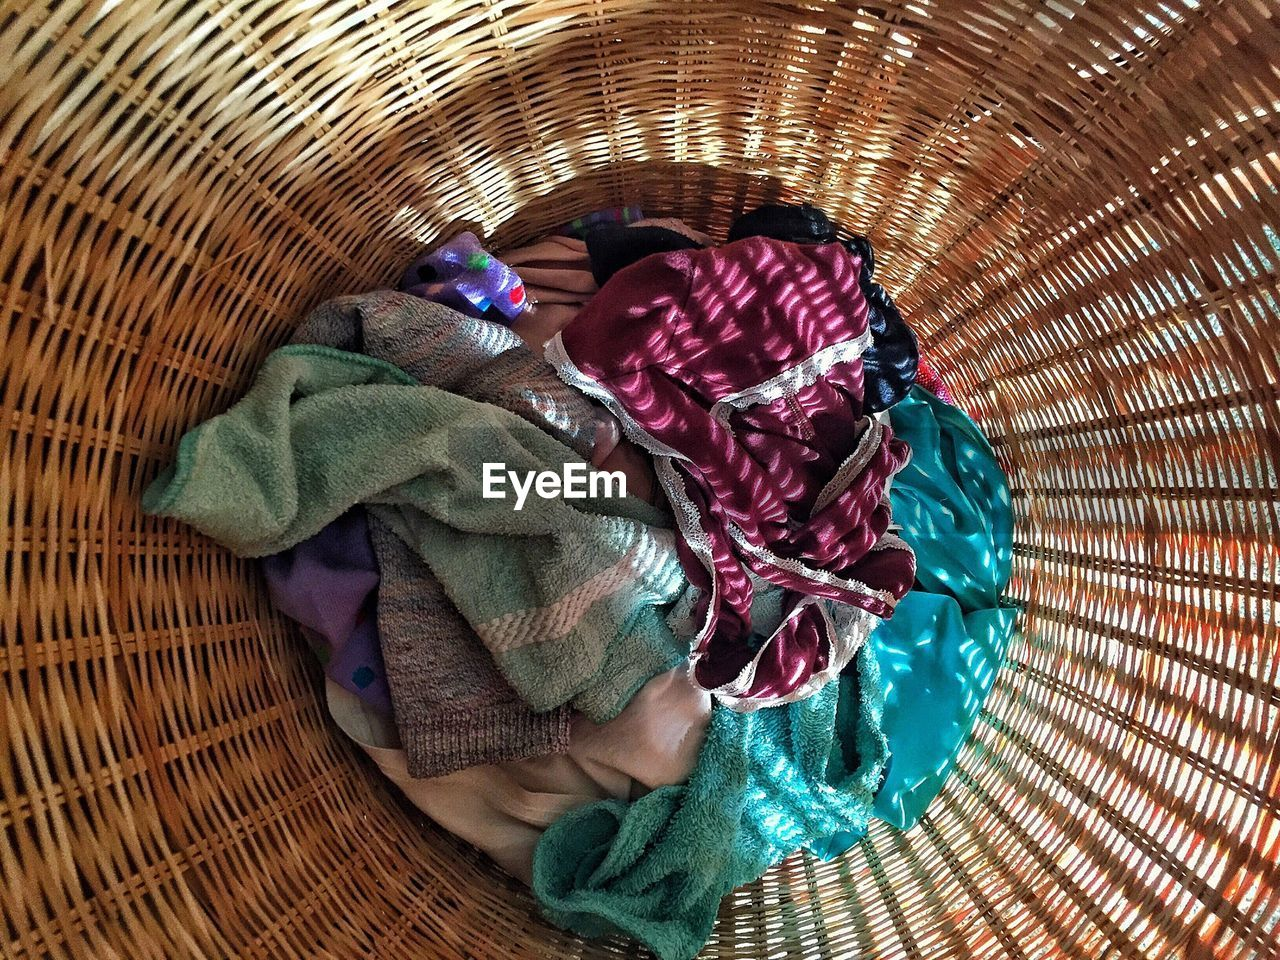 High Angle View Of Clothes On Wicker Basket